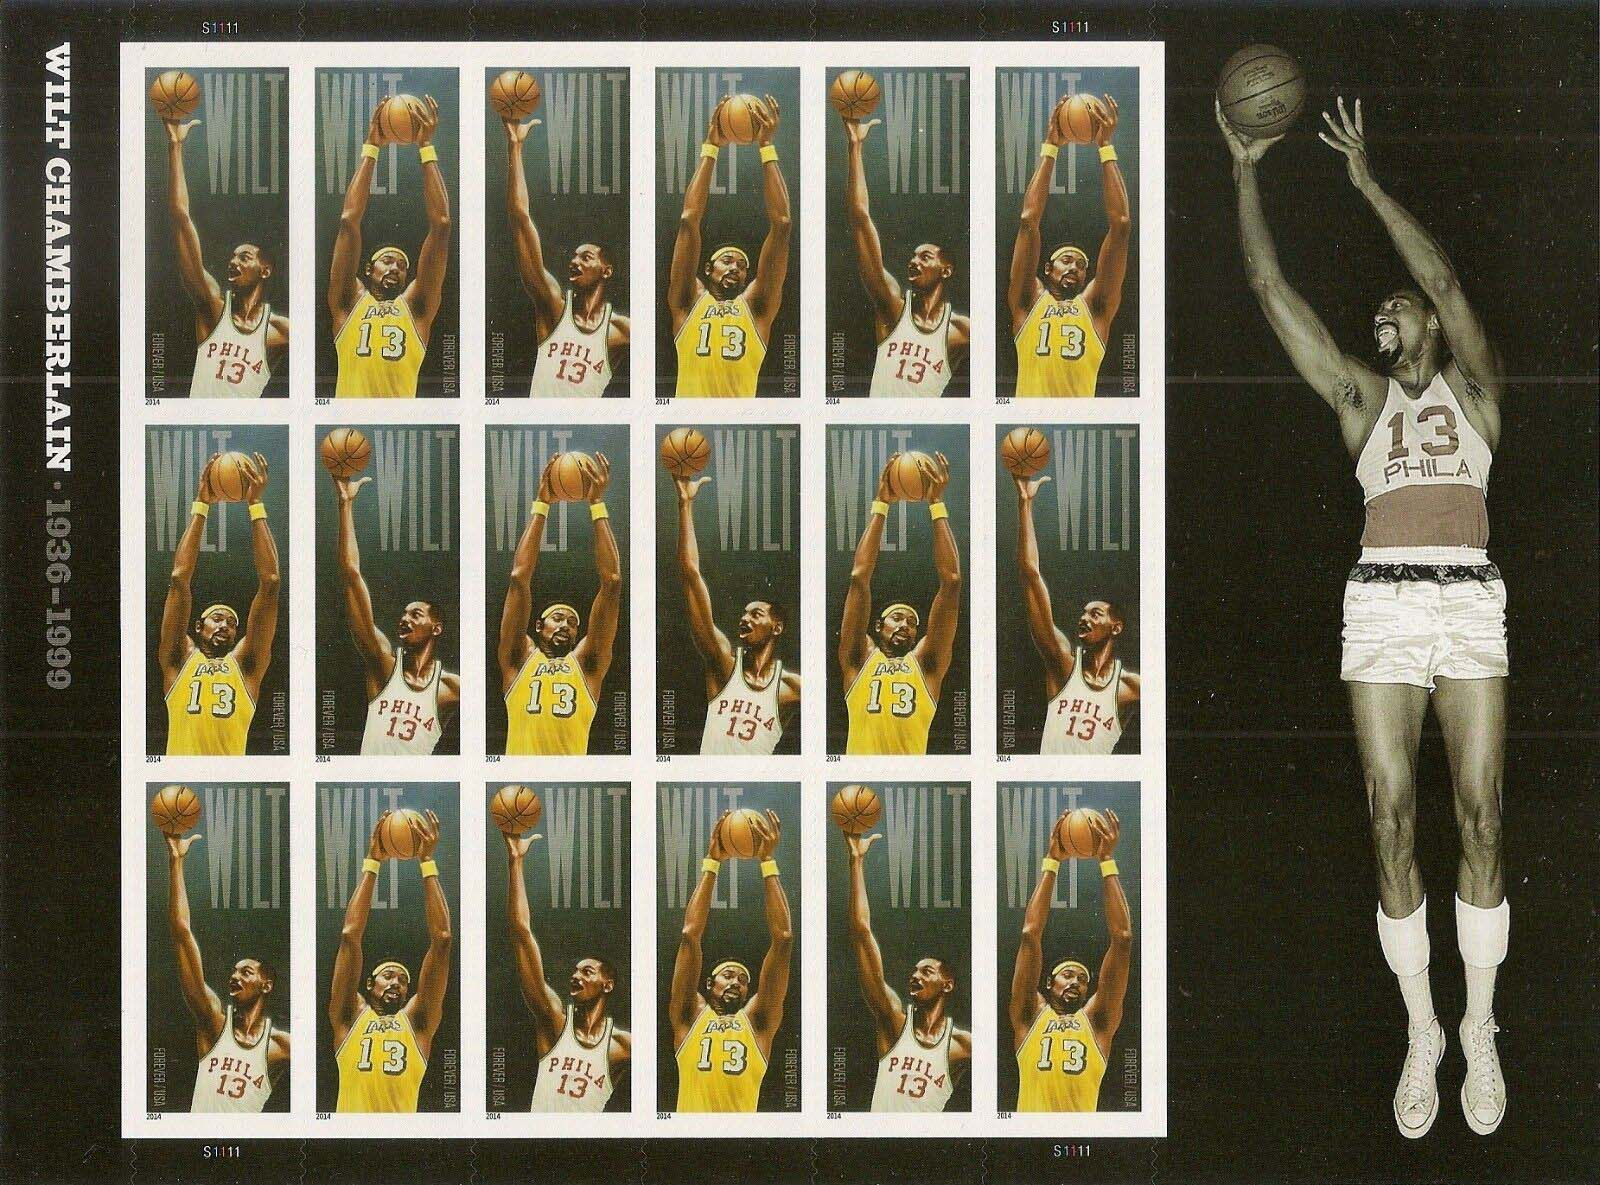 Scott #4950-4951, Forever sheet of 18, Wilt Chamberlain